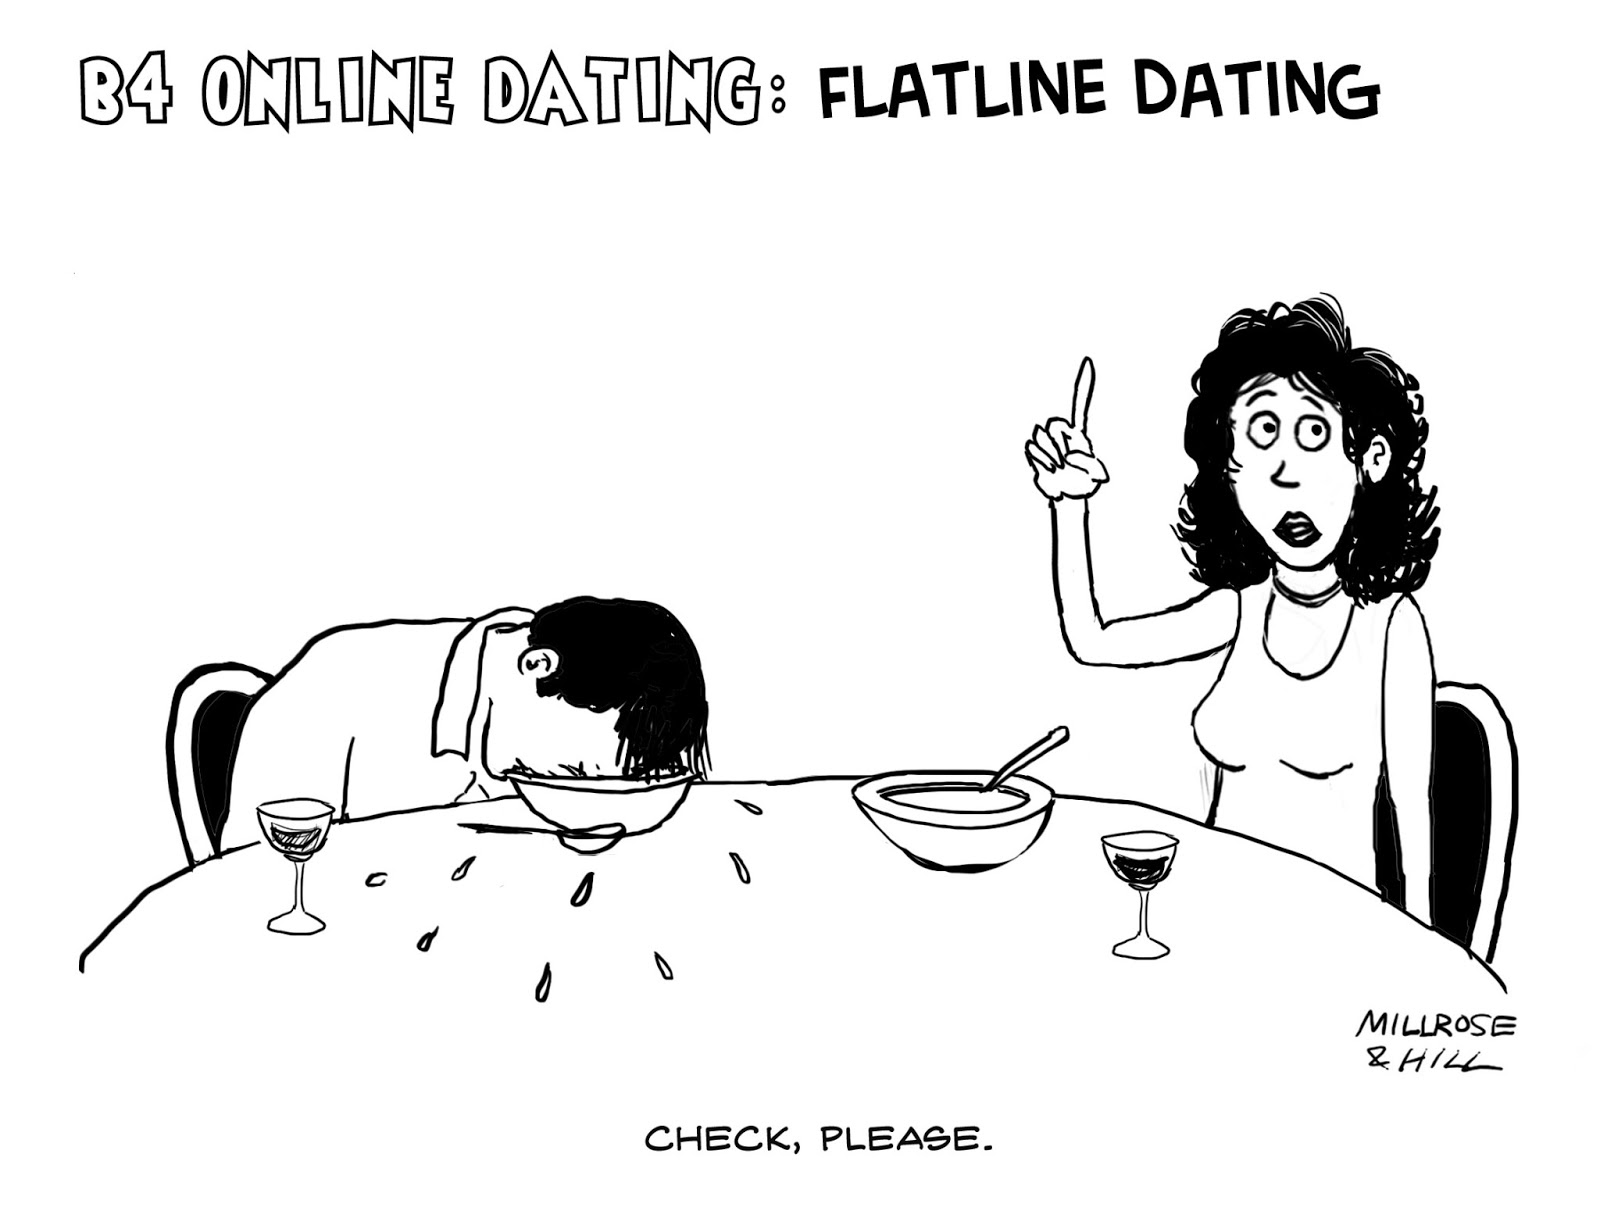 humorous online dating We've collected 14 examples of funny online dating messages that tickle the funny bone and make a good impression 1 flatter & amuse using humorous compliments.